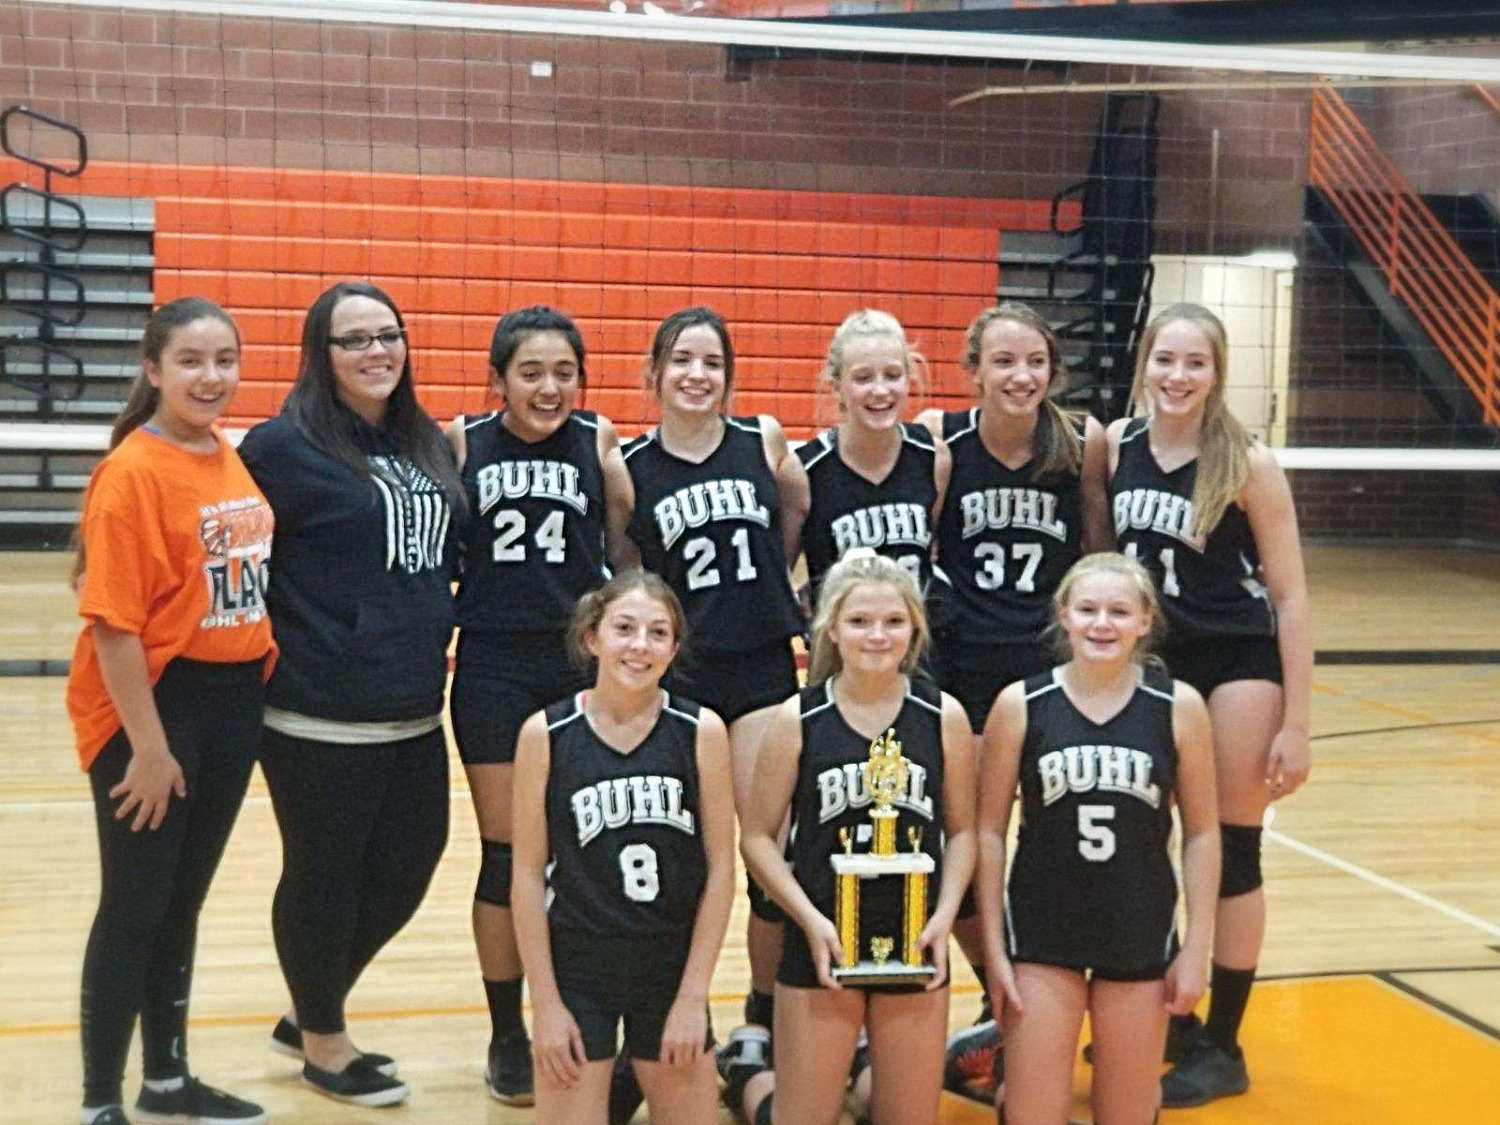 The BMS Volleyball Team won the Buhl School Invitational. They get together for a team picture with the trophy.